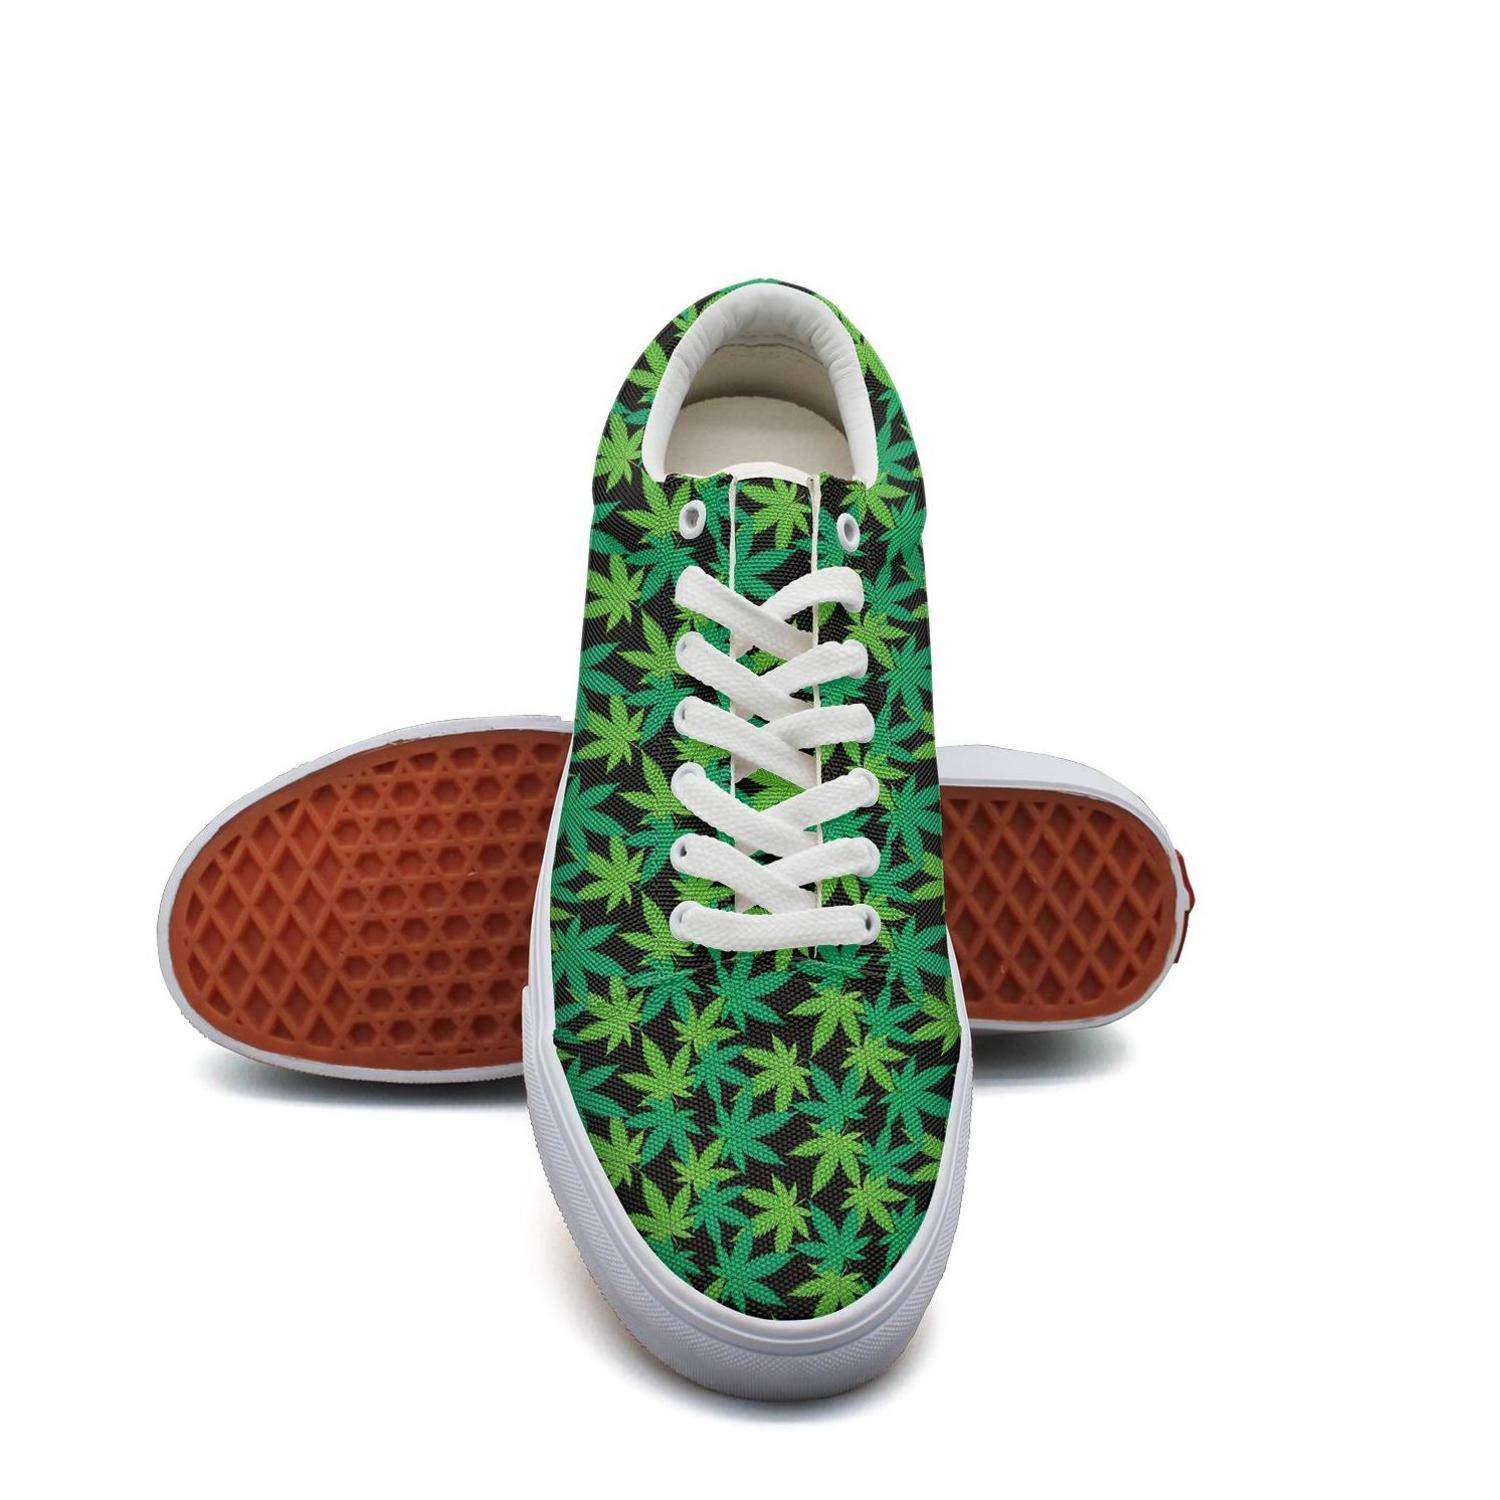 Opr7 Black Background Green Cannabis Women Lace-Up Skate Shoes Canvas Upper Sneaker Fashion